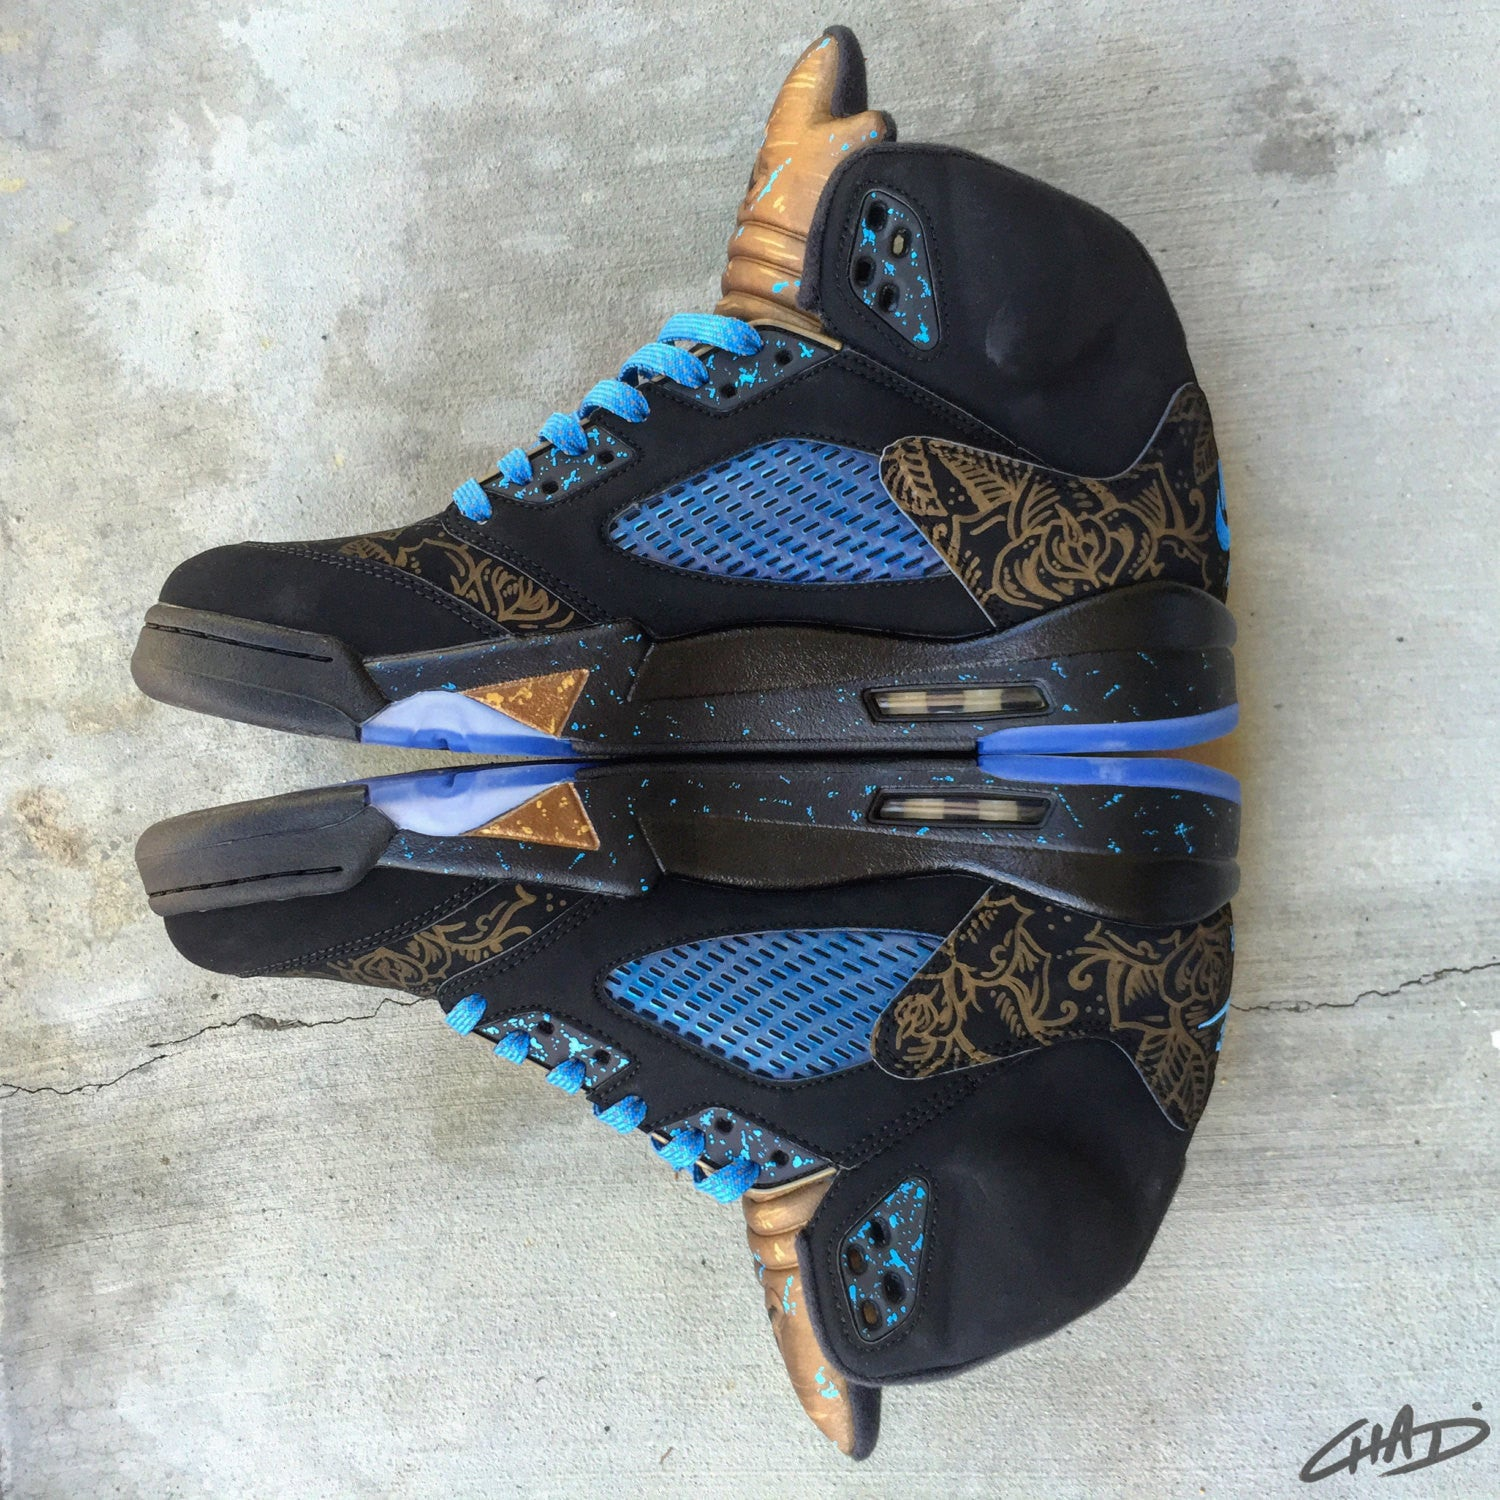 Pure Alloy - Custom hand painted Jordan retro 5 shoes